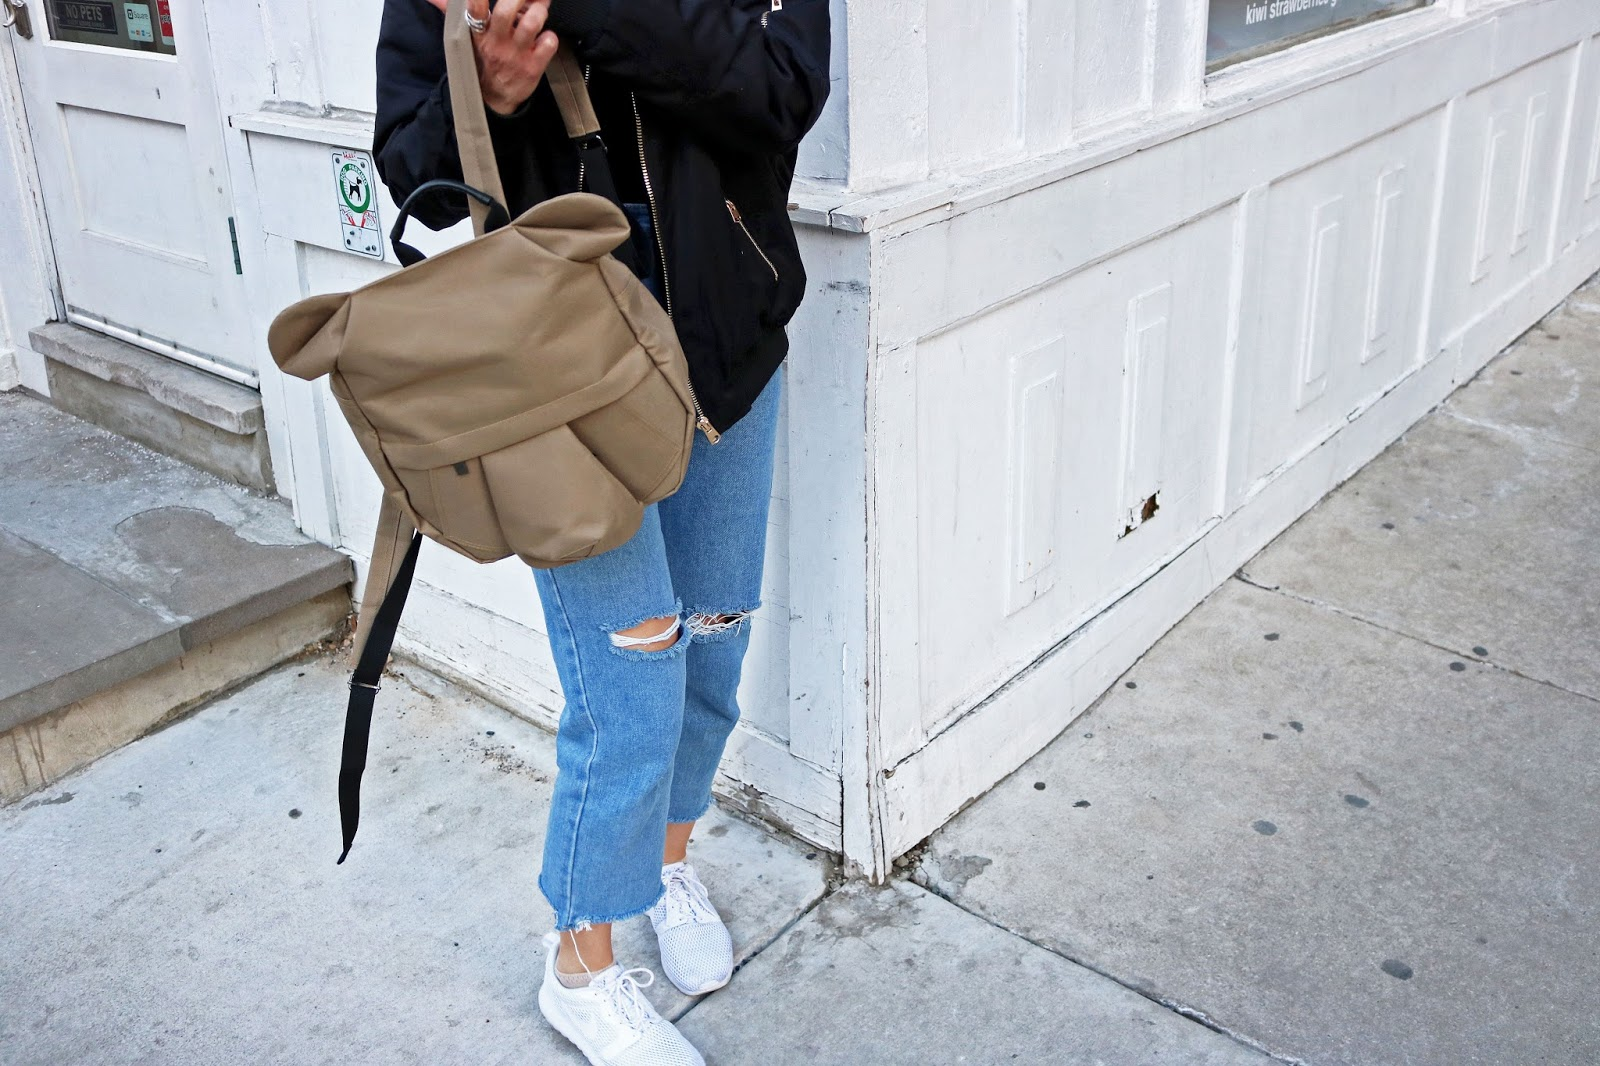 Origami Backpack, Denim Jeans, White Sneakers